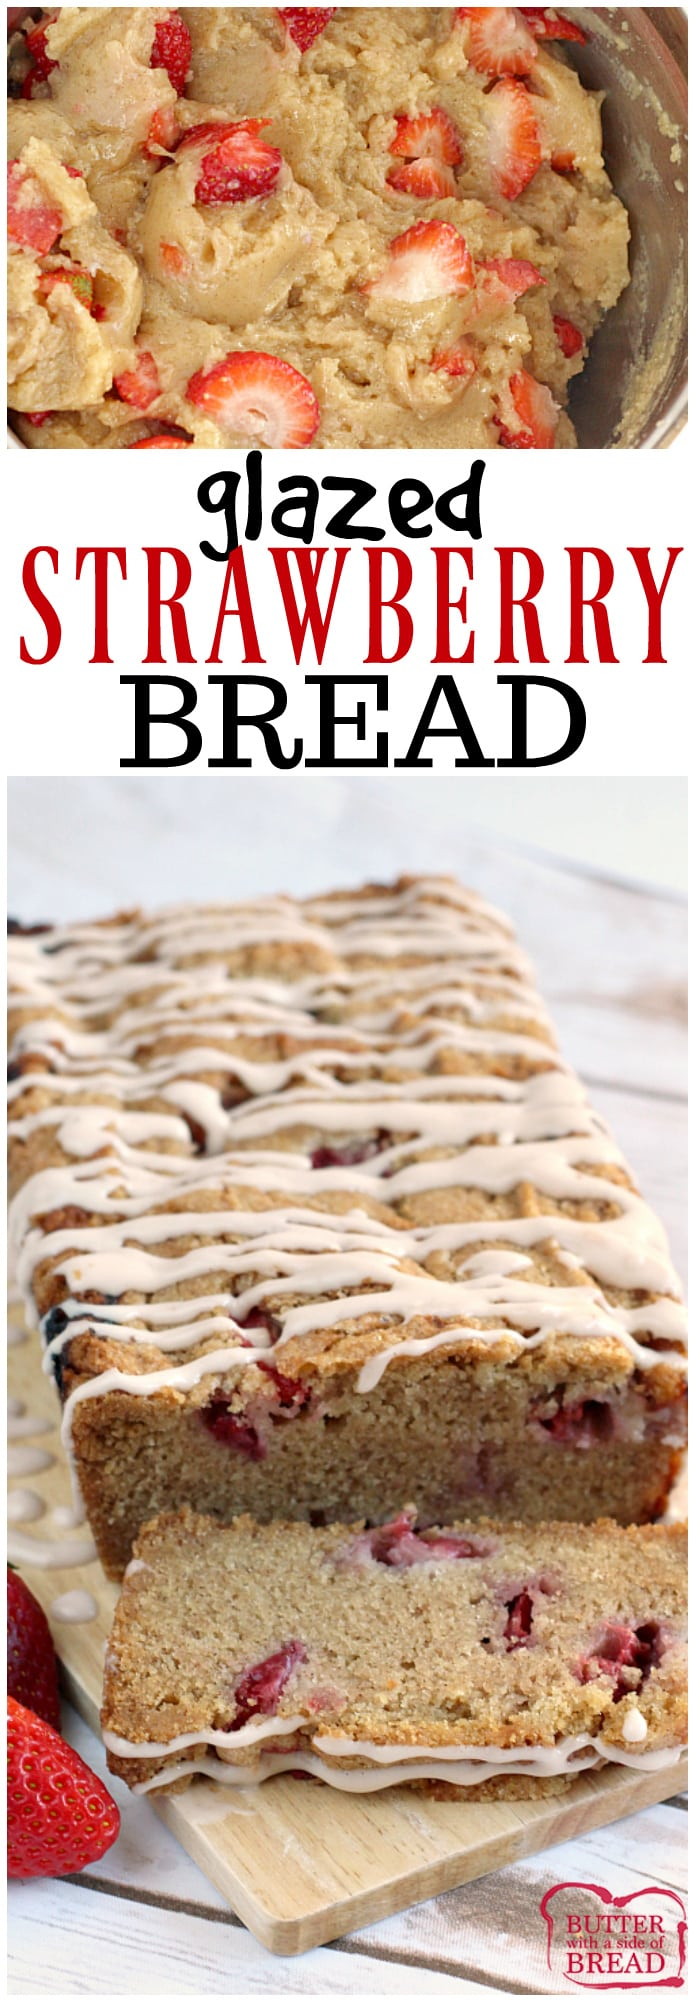 Glazed Strawberry Bread is a delicious, moist quick bread that is made with fresh strawberries and a touch of cinnamon too! The frosting is made with strawberry cream cheese for a little bit of extra strawberry flavor!